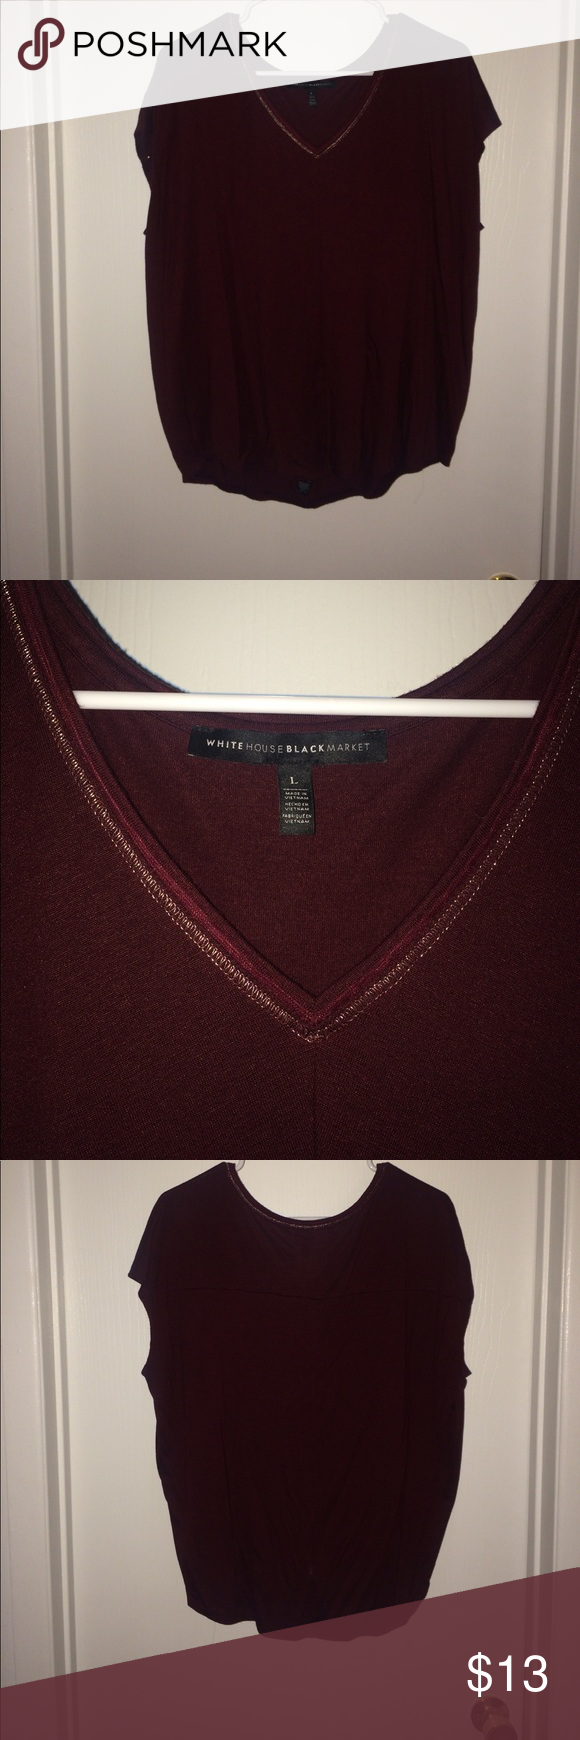 Maroon soft tee with gold stitch Maroon tee with short cut sleeves and gold stitching around the neckline. Size large. From White House black market. White House Black Market Tops Tees - Short Sleeve